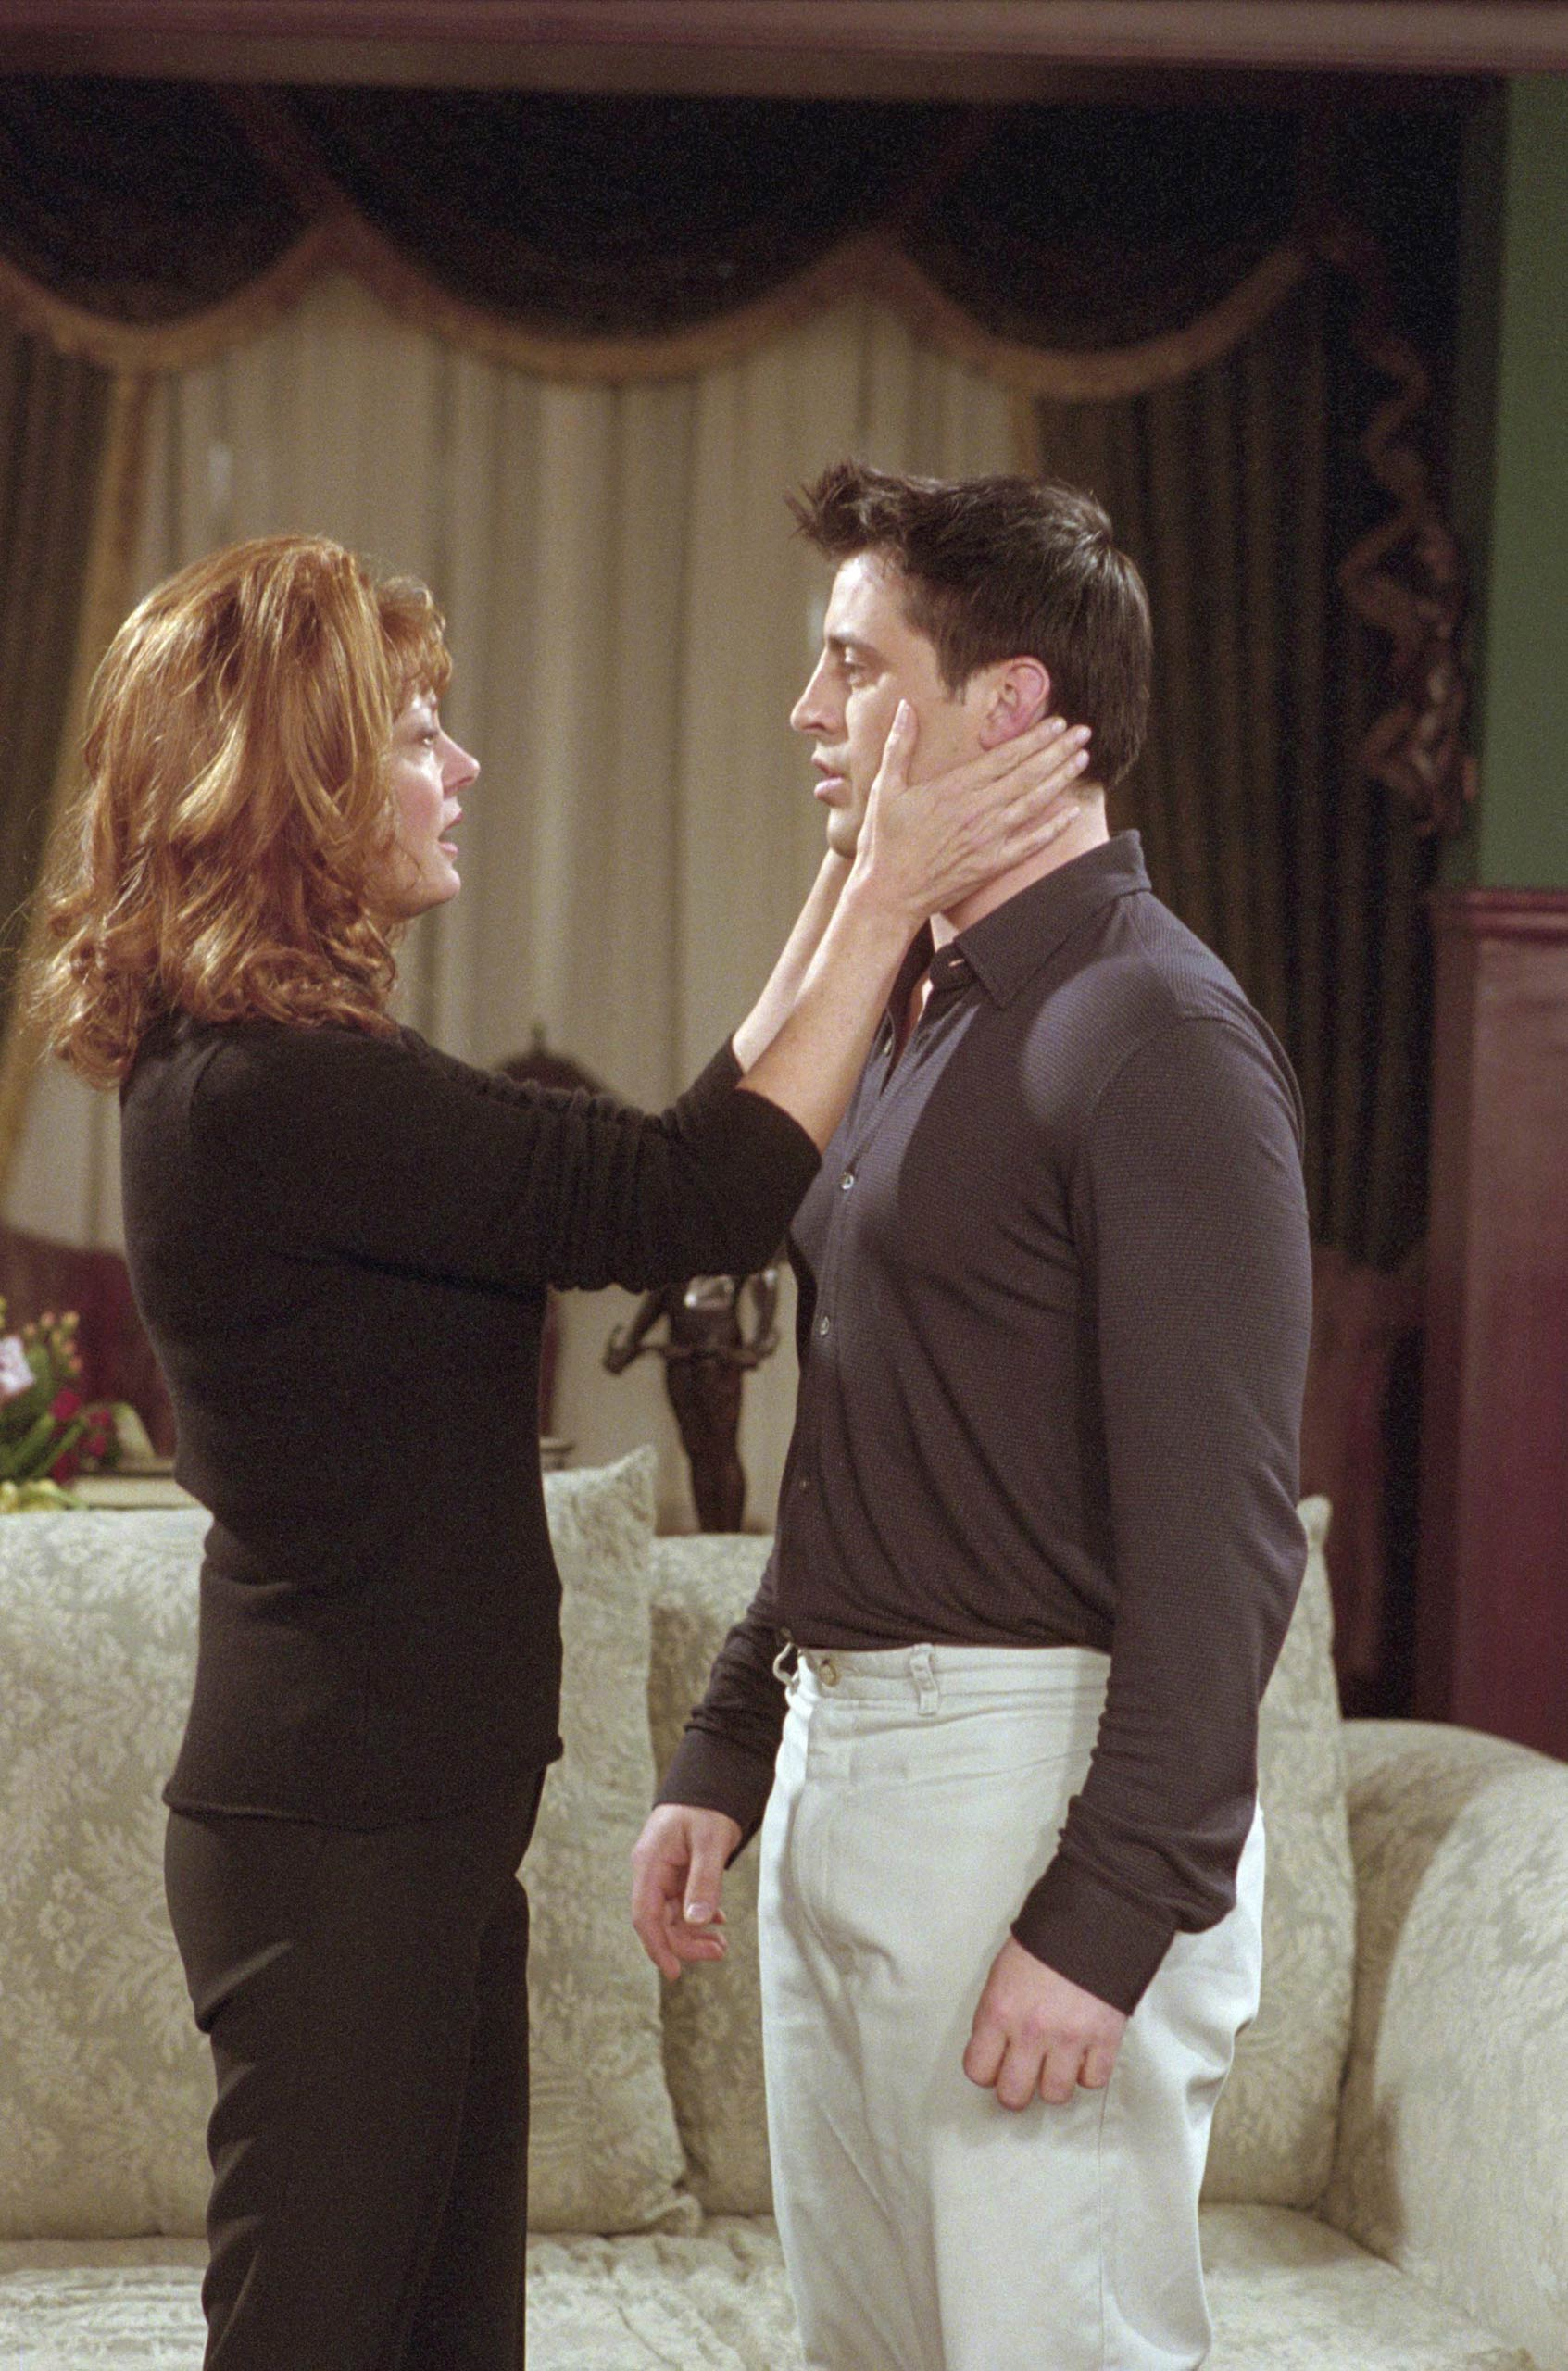 <strong>Susan Sarandon</strong> – In a plot line on <i>Days of Our Lives</i>, Joey gets Susan Sarandon's character's brain